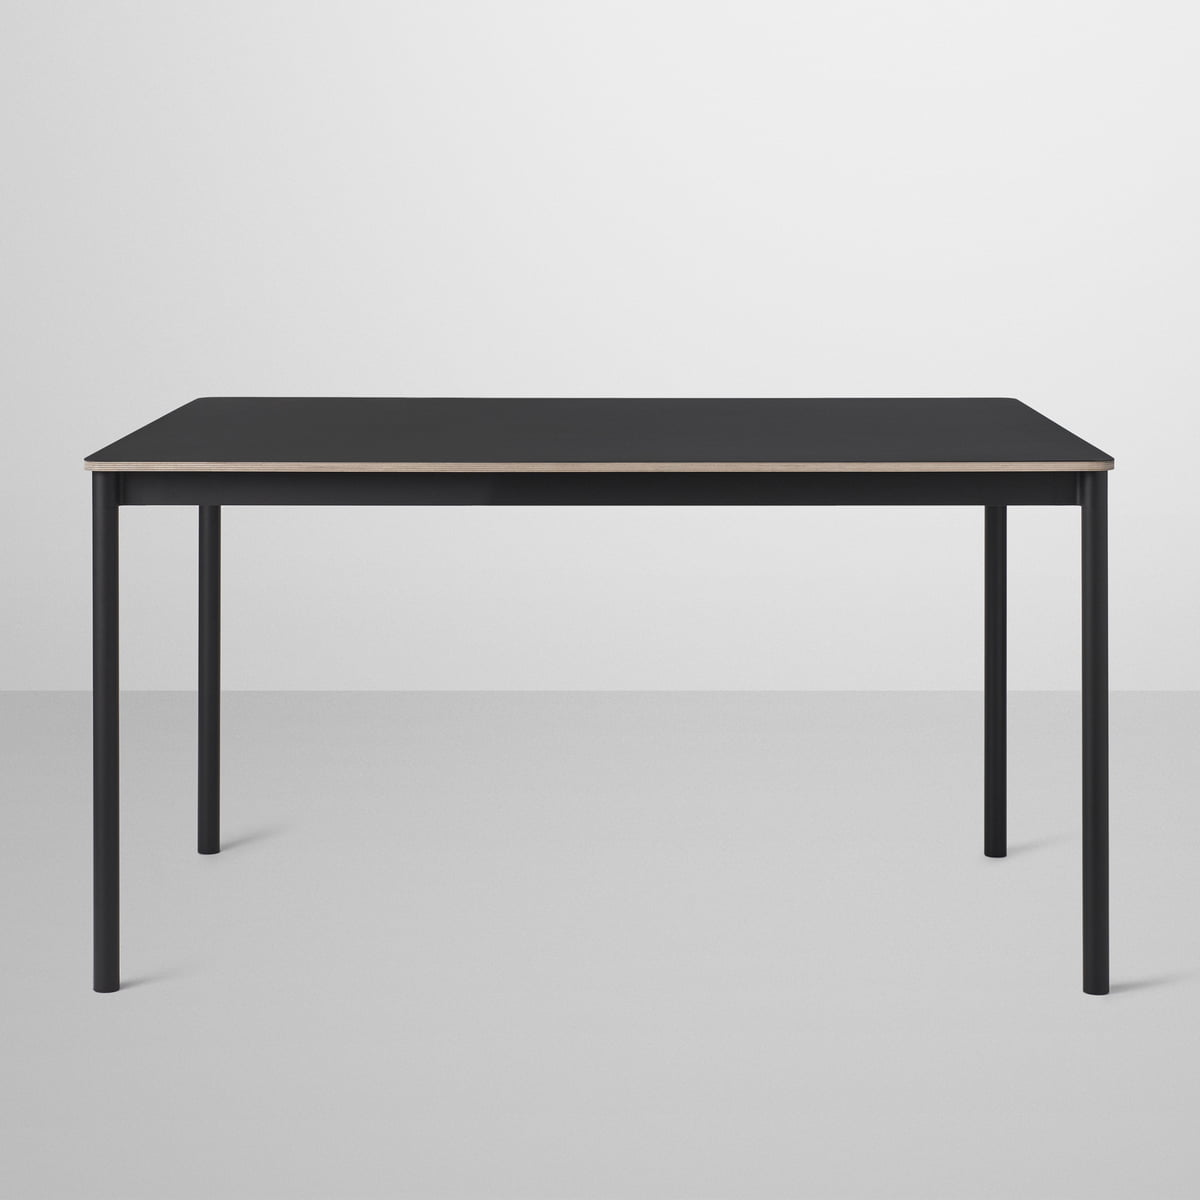 base table von muuto im design shop. Black Bedroom Furniture Sets. Home Design Ideas